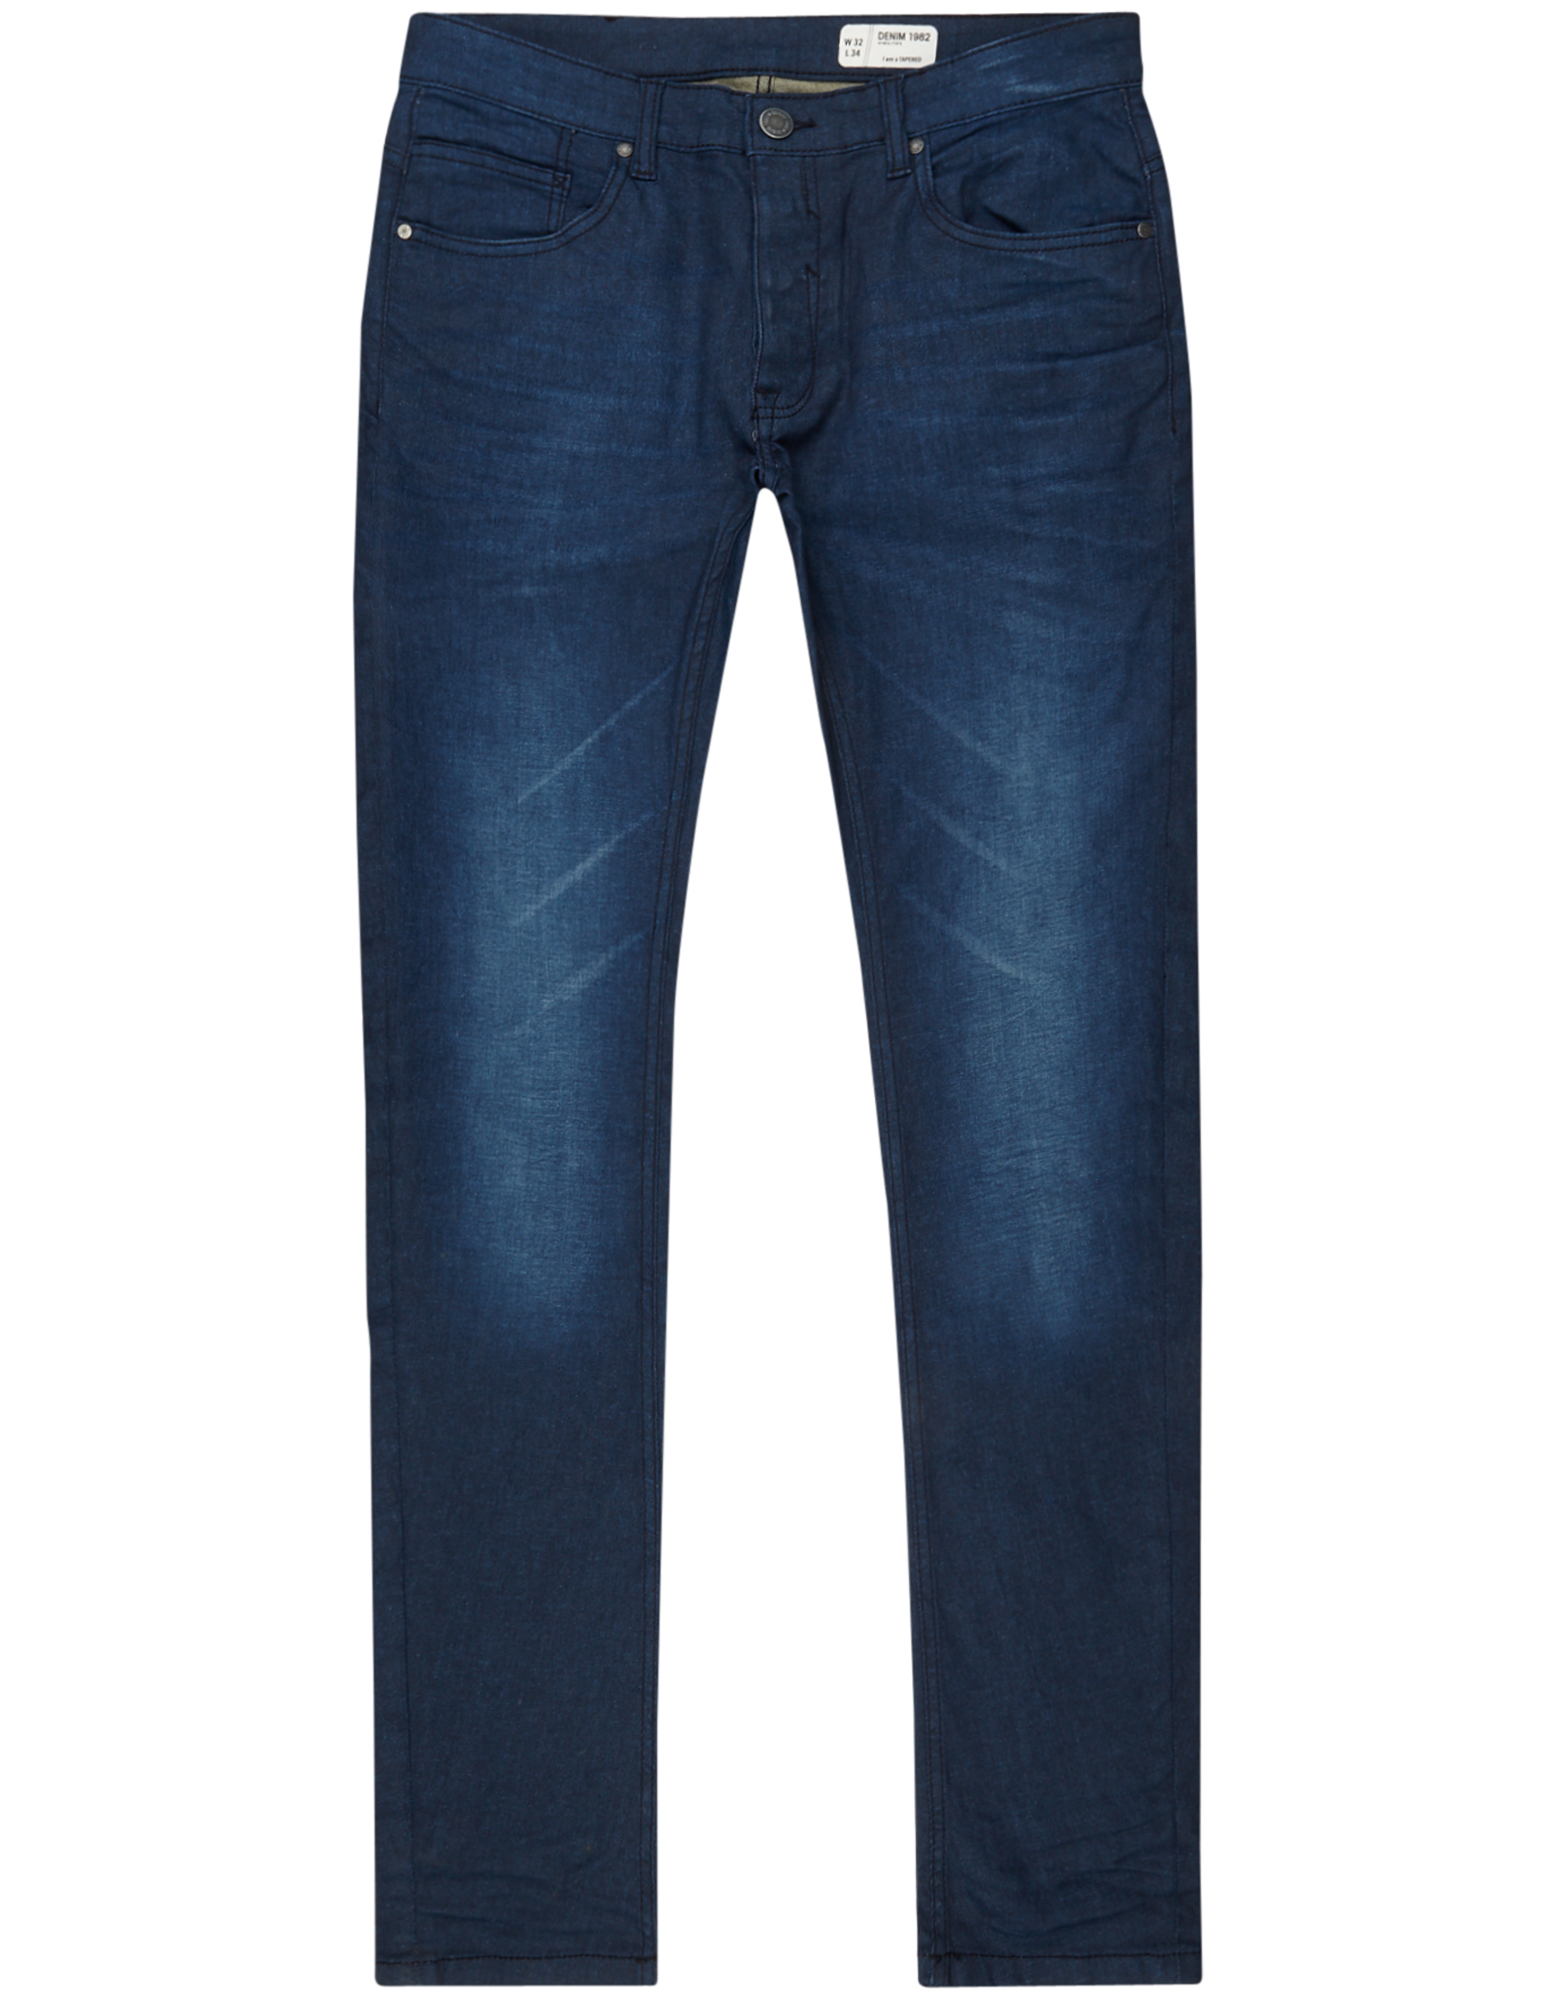 Herren Tapered Fit Jeans rot | 81554869950501